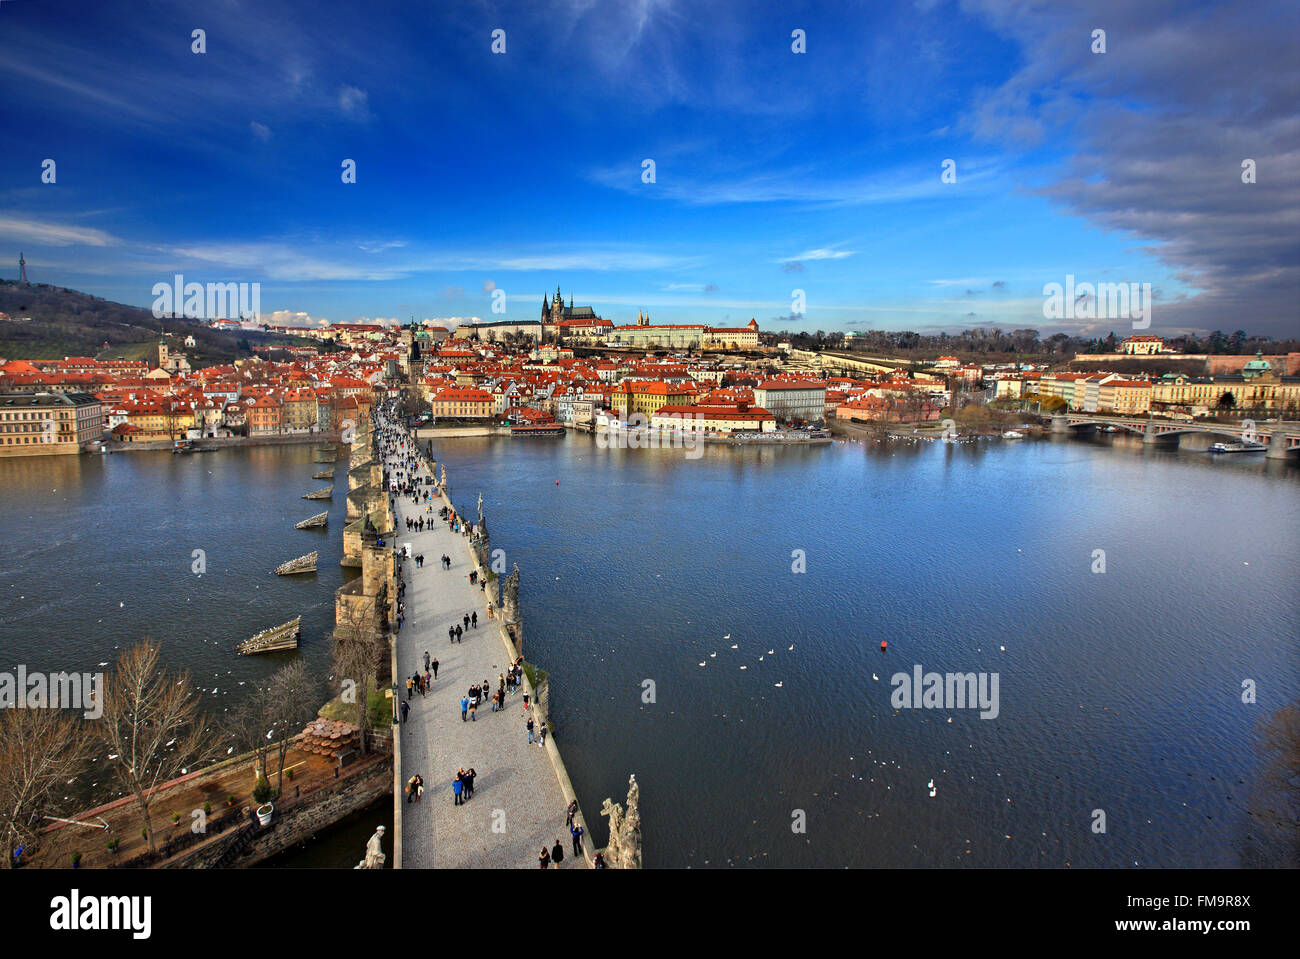 Charles' Bridge, Vltava river, Mala Strana and Prague Castle. View from one of the Towers of the bridge - Stock Image